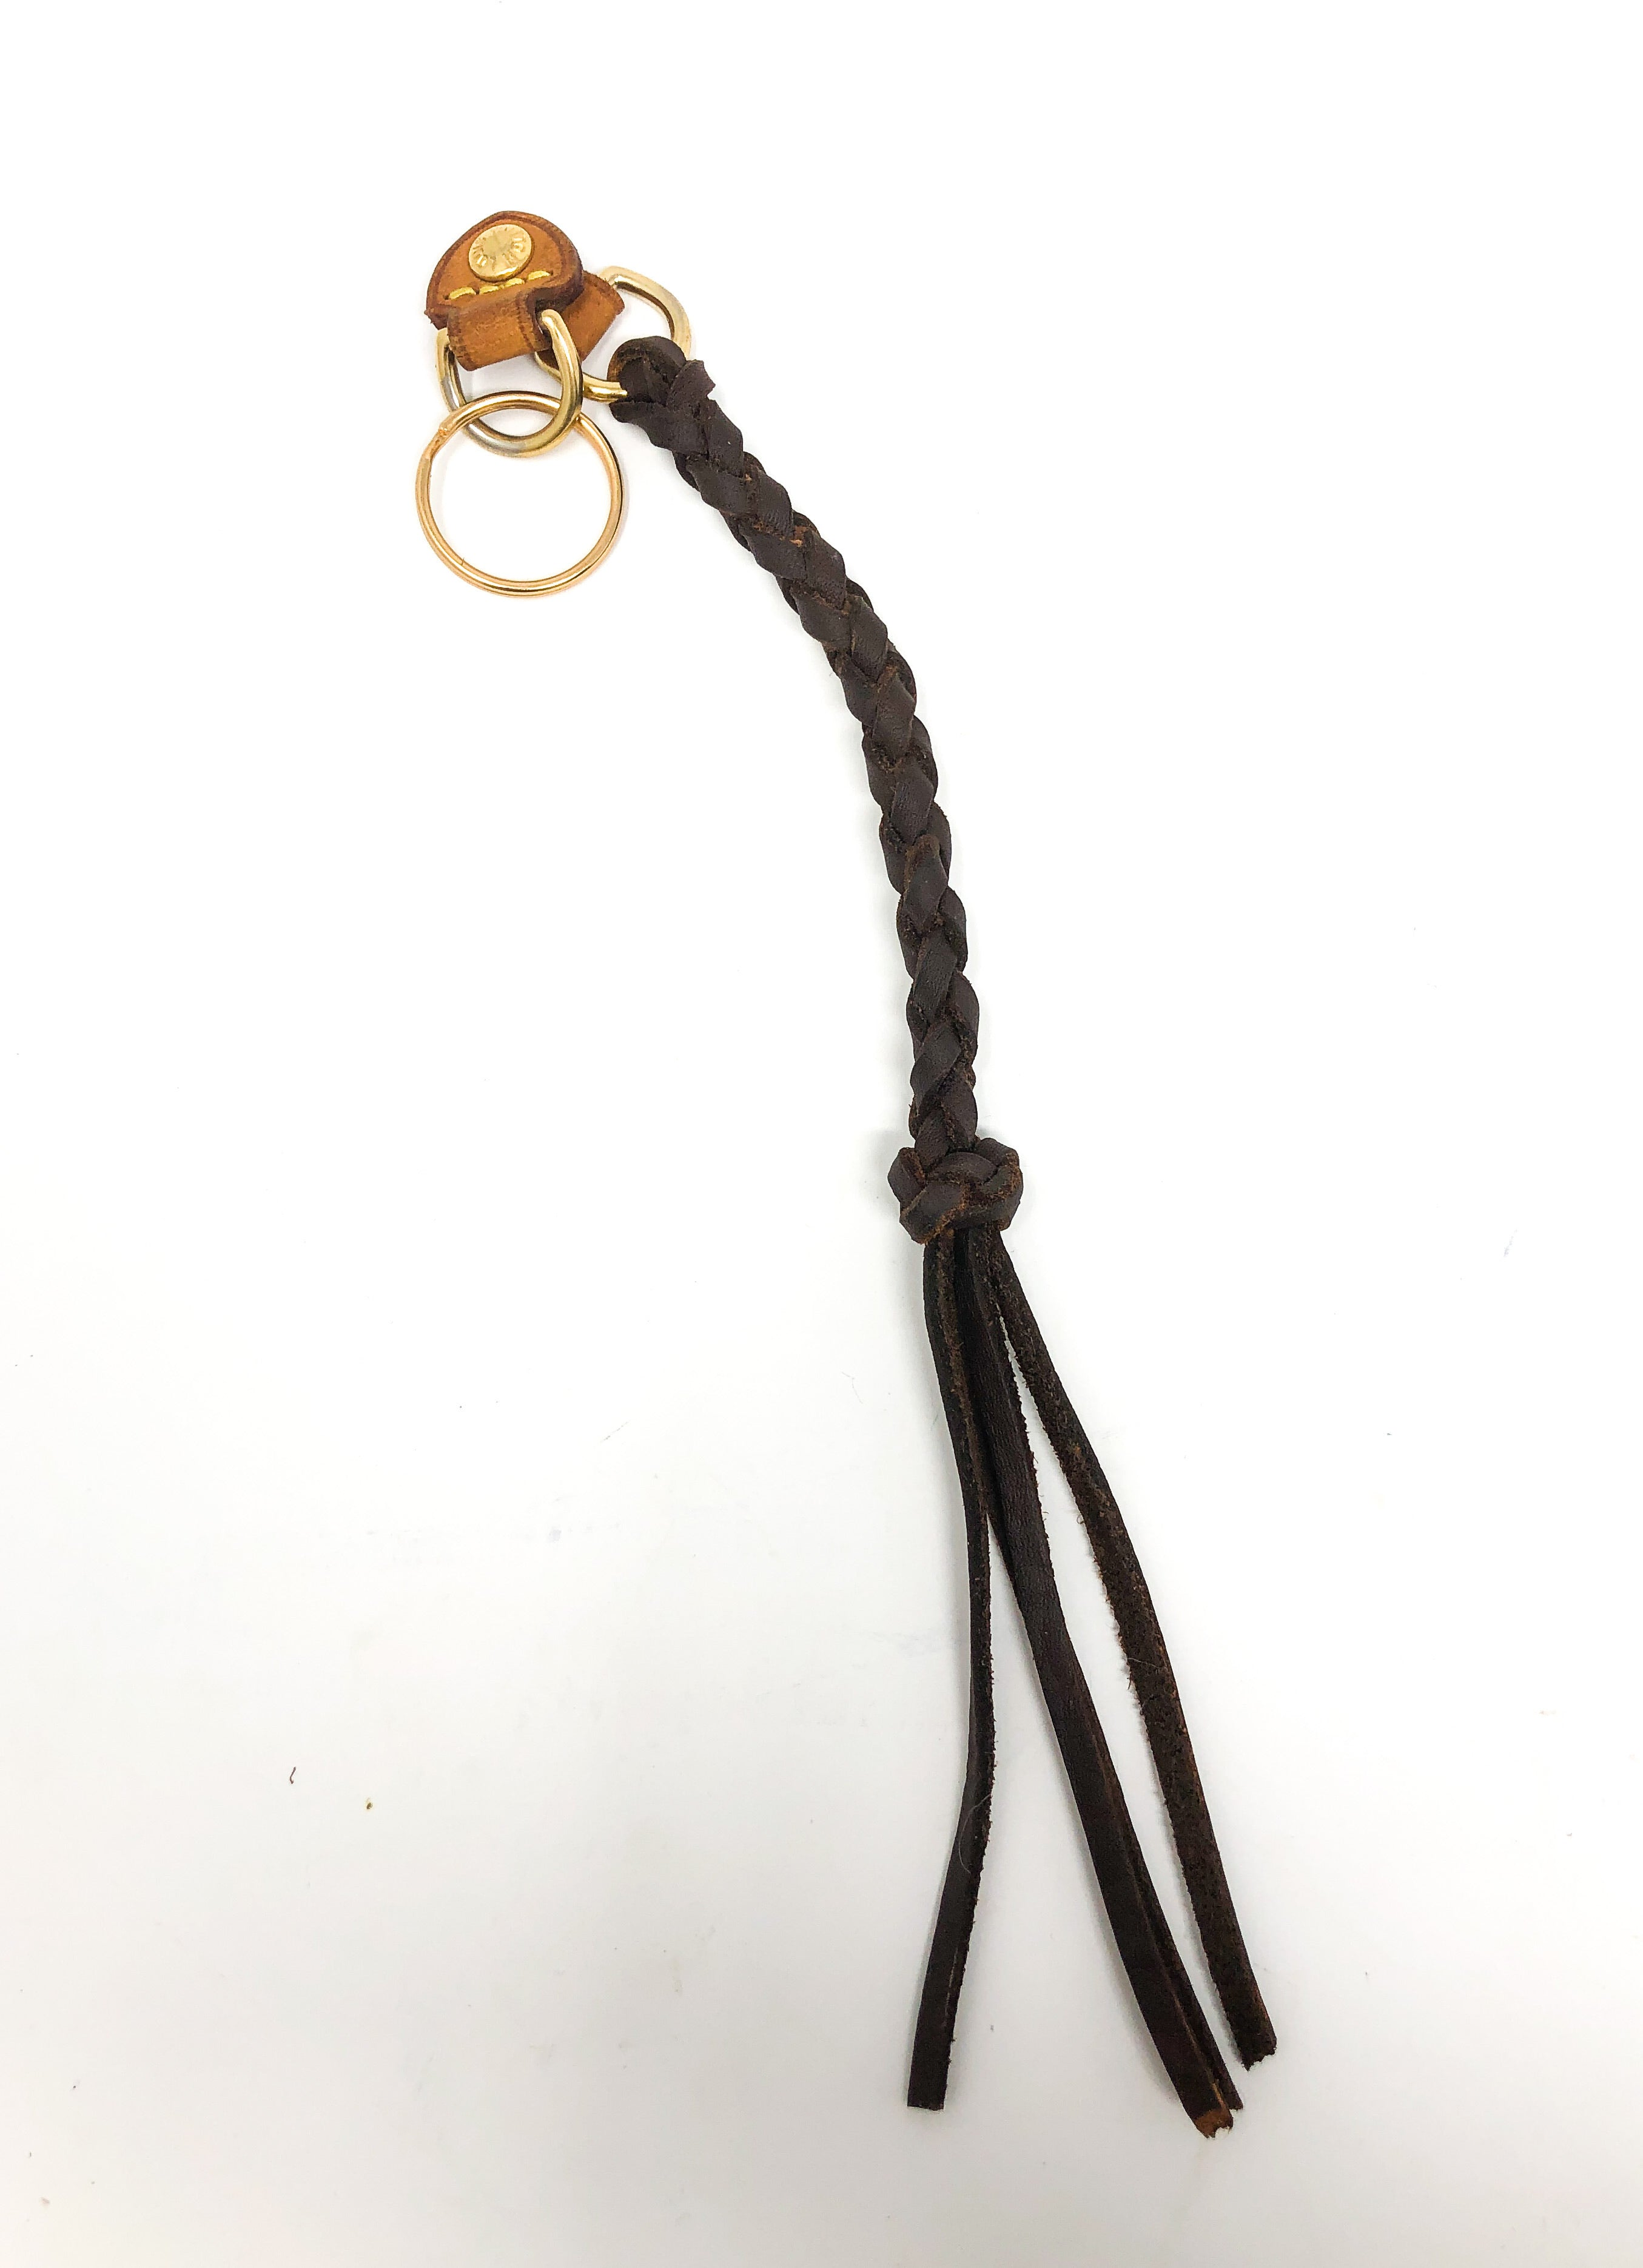 Large Braided Keychain with Louis Vuitton Hardware